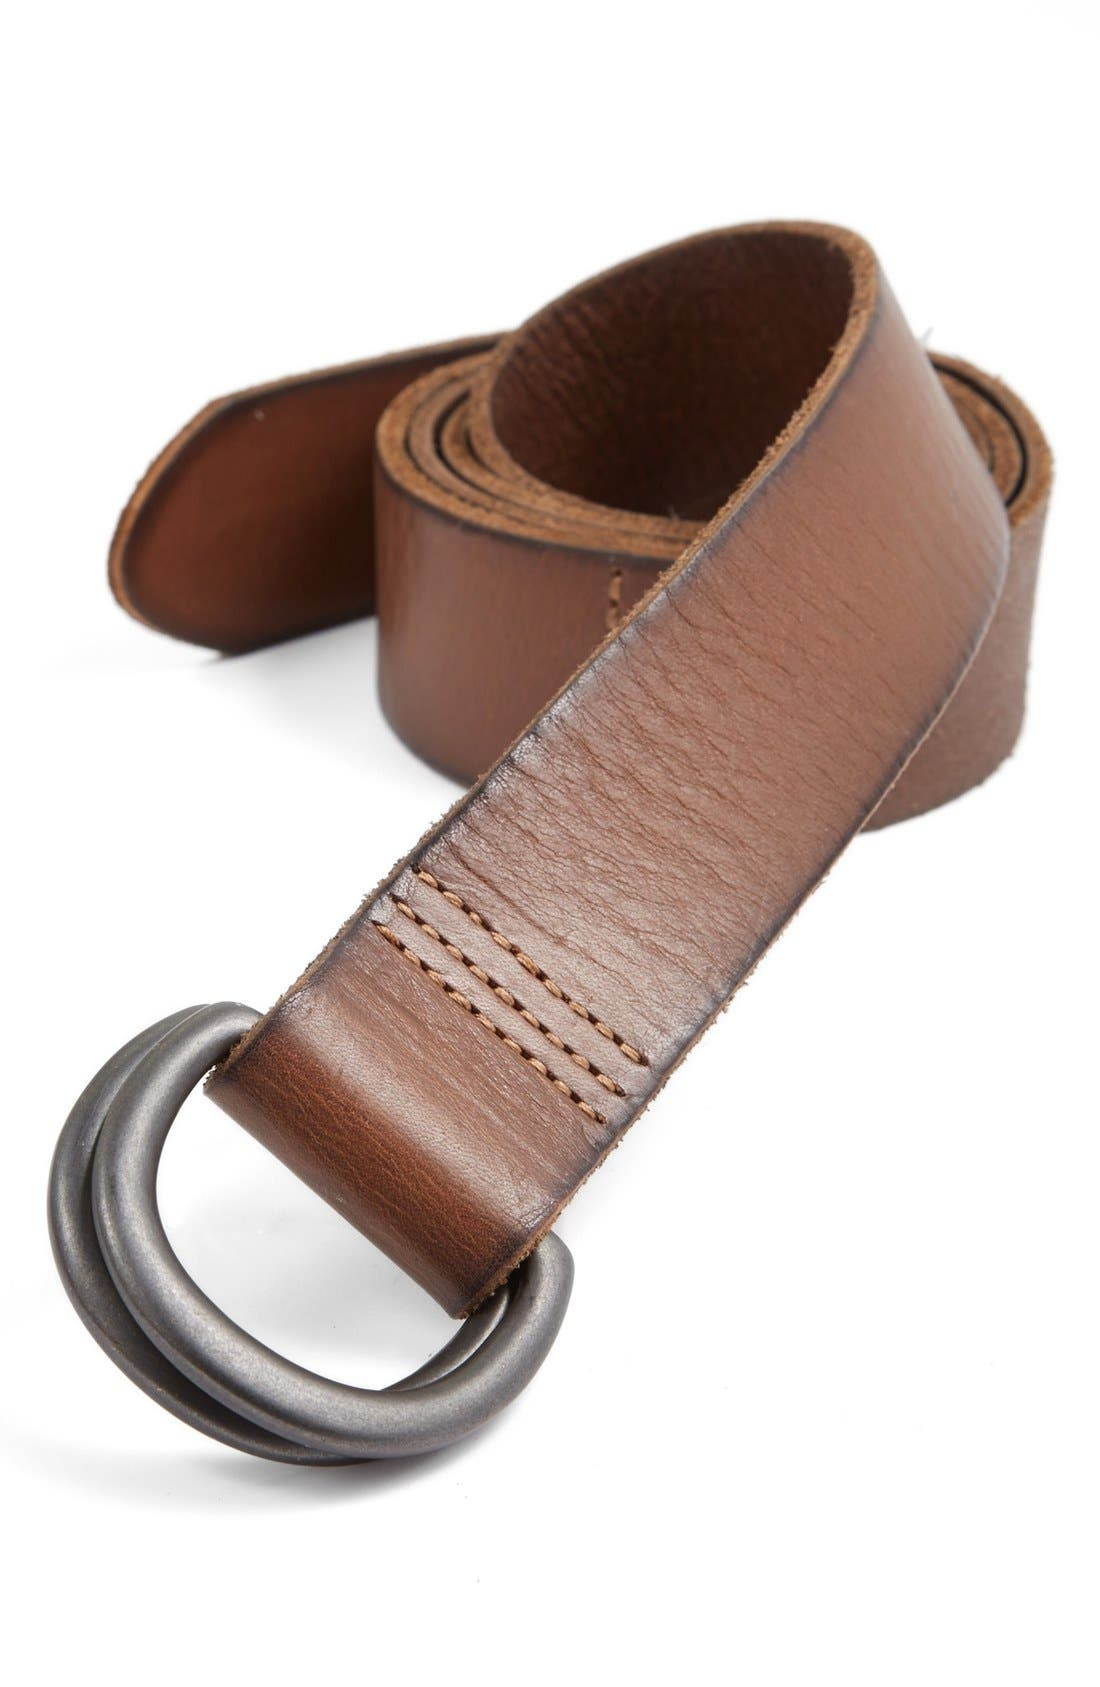 Main Image - The Rail Leather Belt with D-Ring Buckle